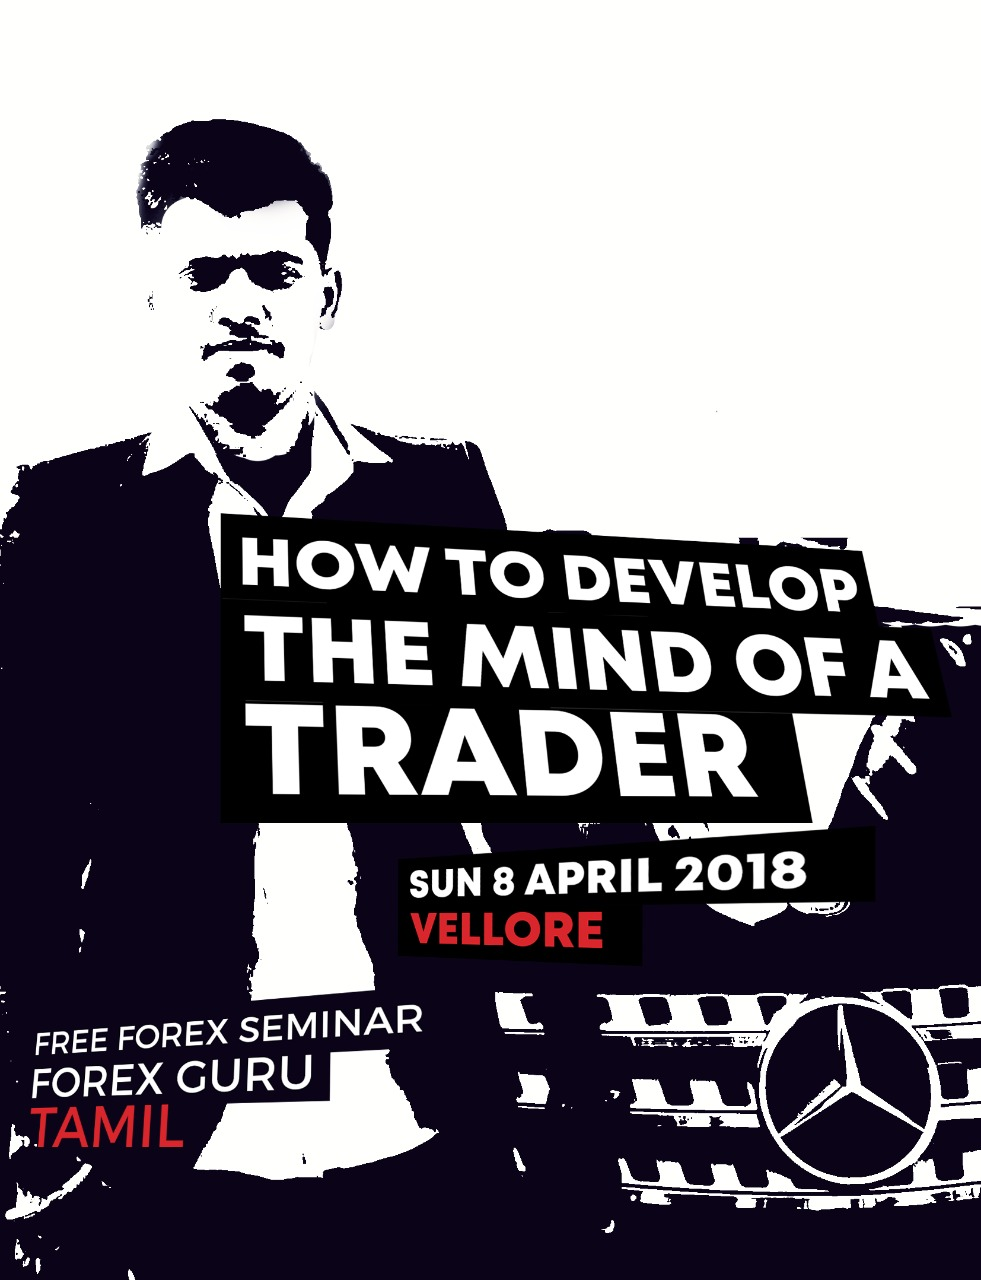 HOW TO DEVELOP THE MIND OF A TRADER